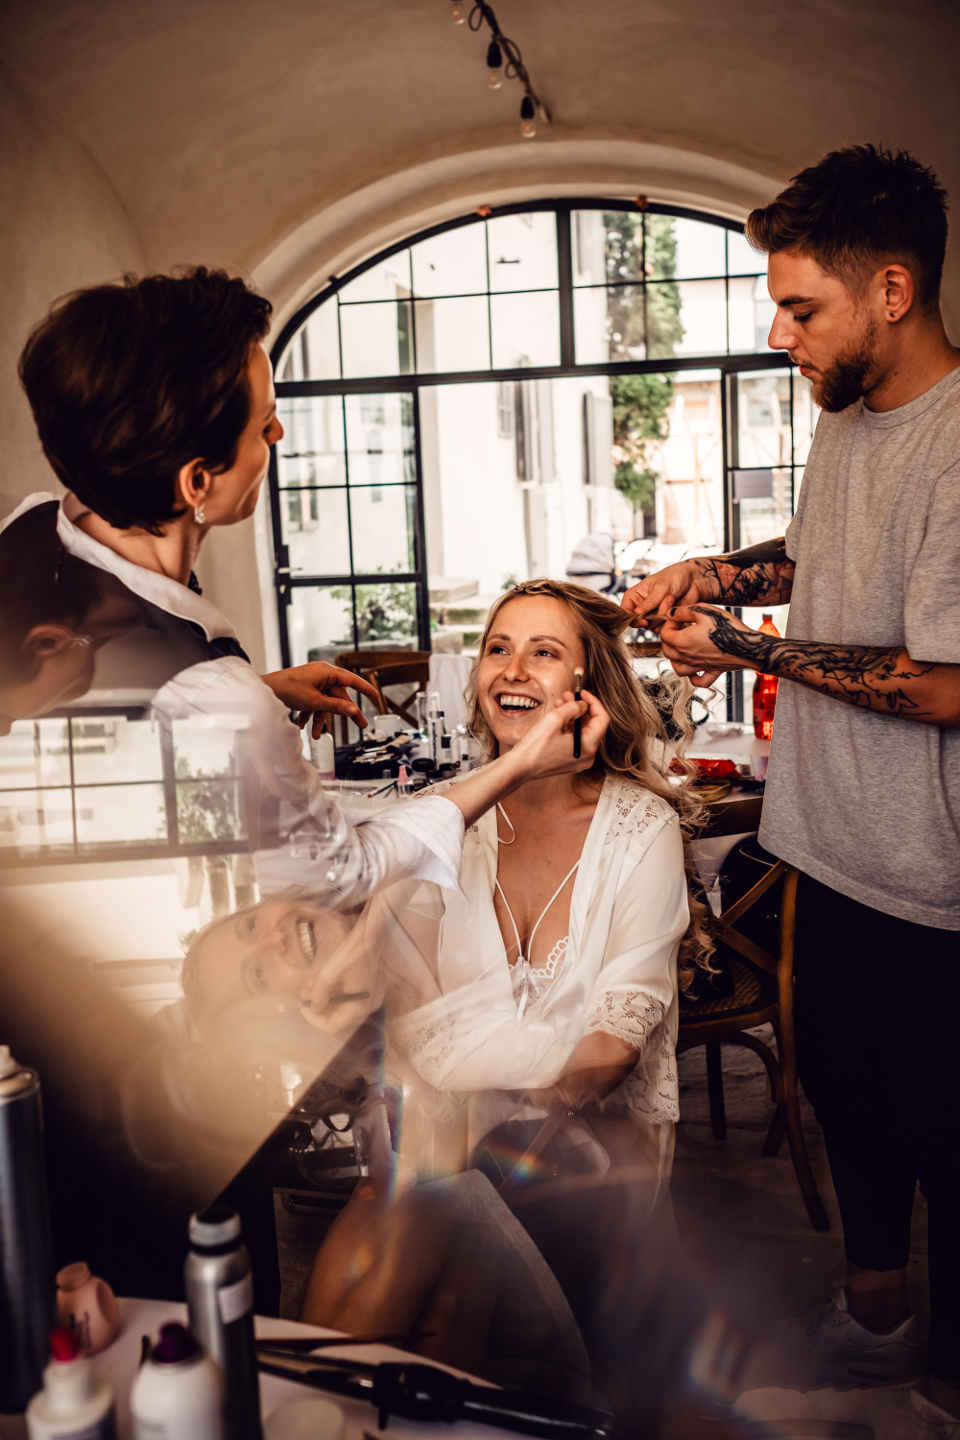 Getting the hair and makeup done is a fairly elaborate process, so you should wear something comfortable like a super-smooth silk robe.